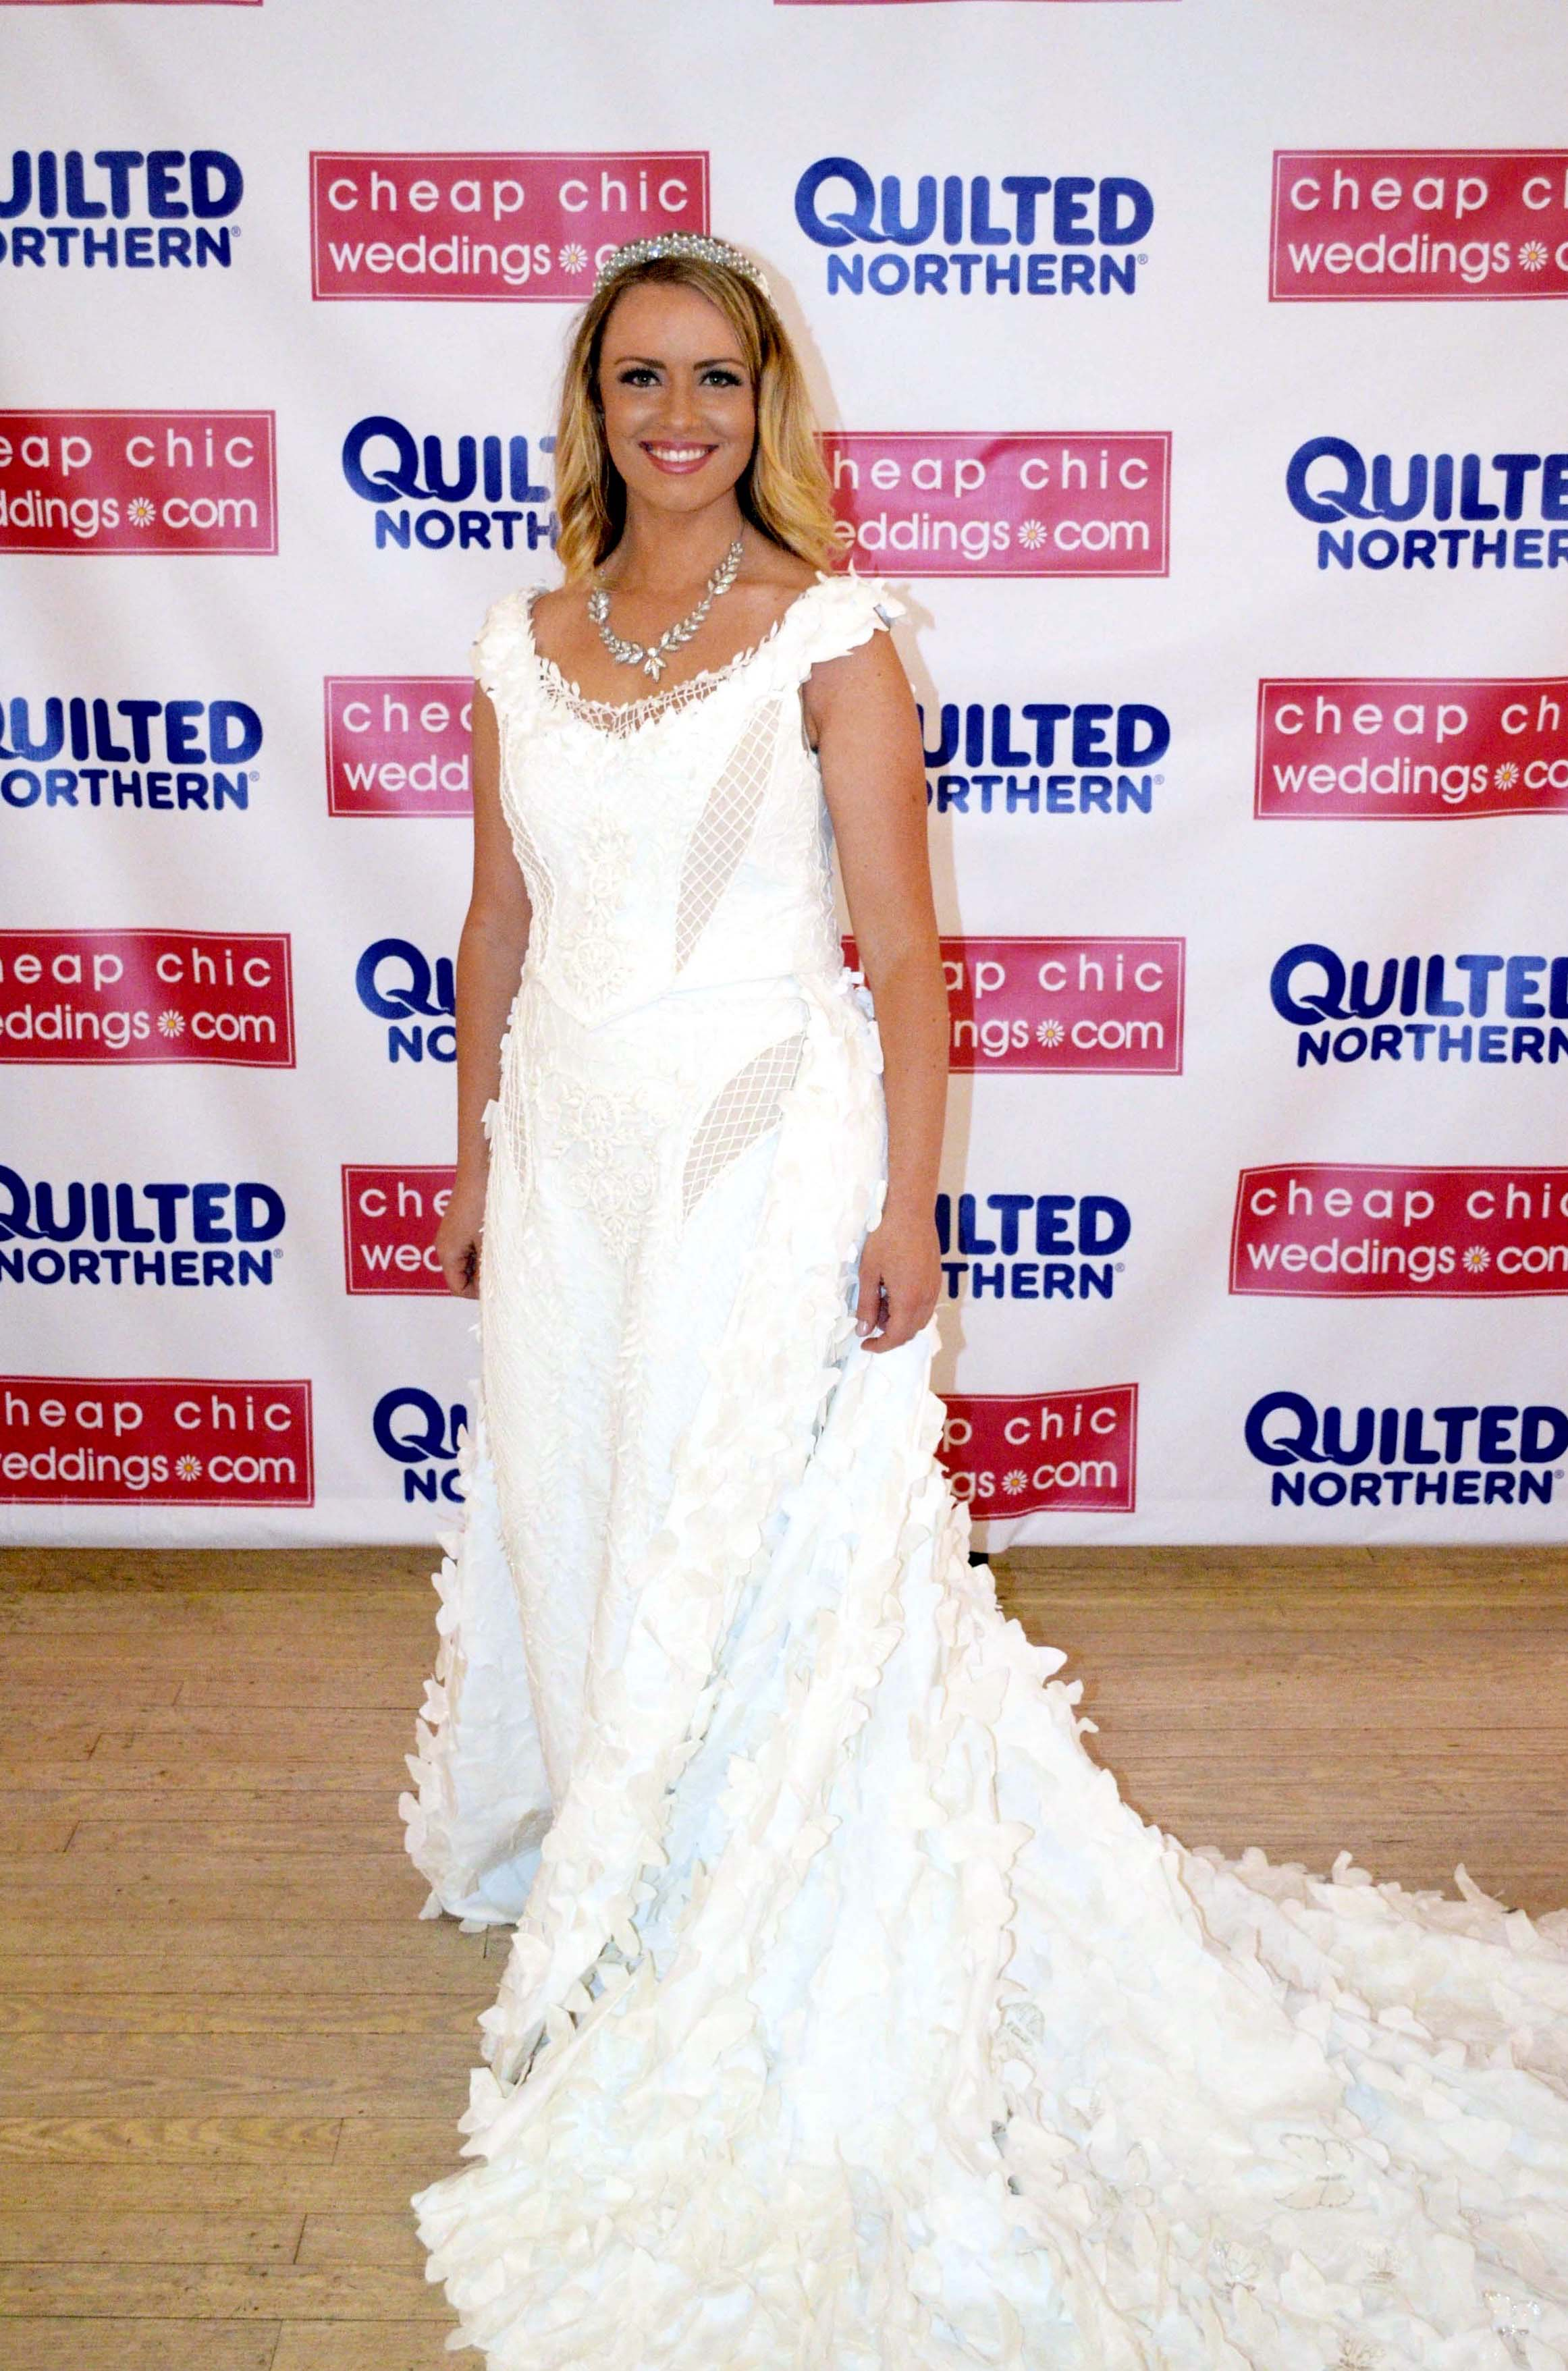 Wedding Dress Too Expensive 15th Annual Toilet Paper Wedding Dress